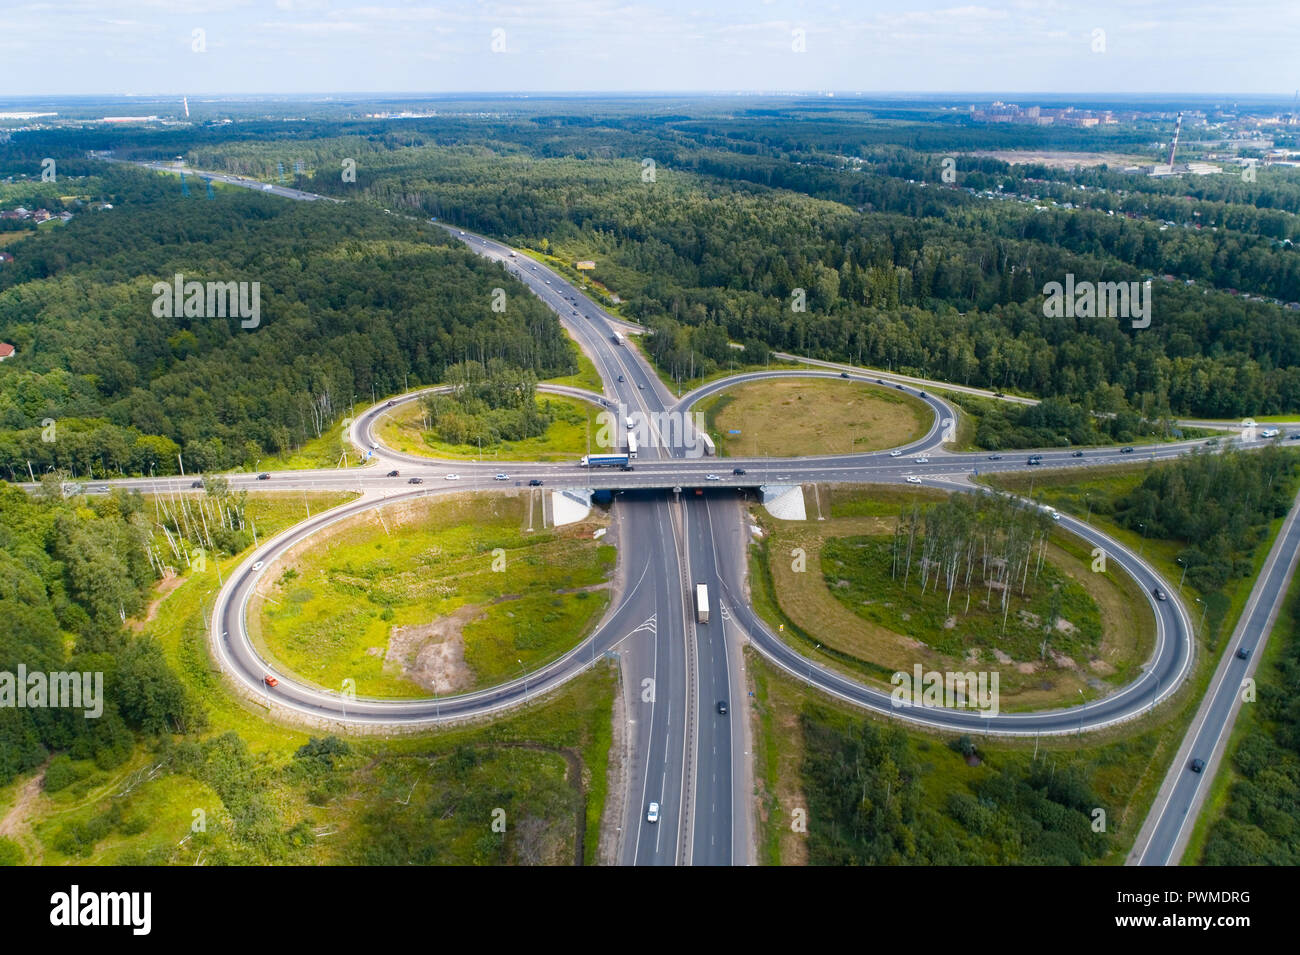 Road junction in the Moscow region near the city of Elektrostal. Aerial photography. - Stock Image